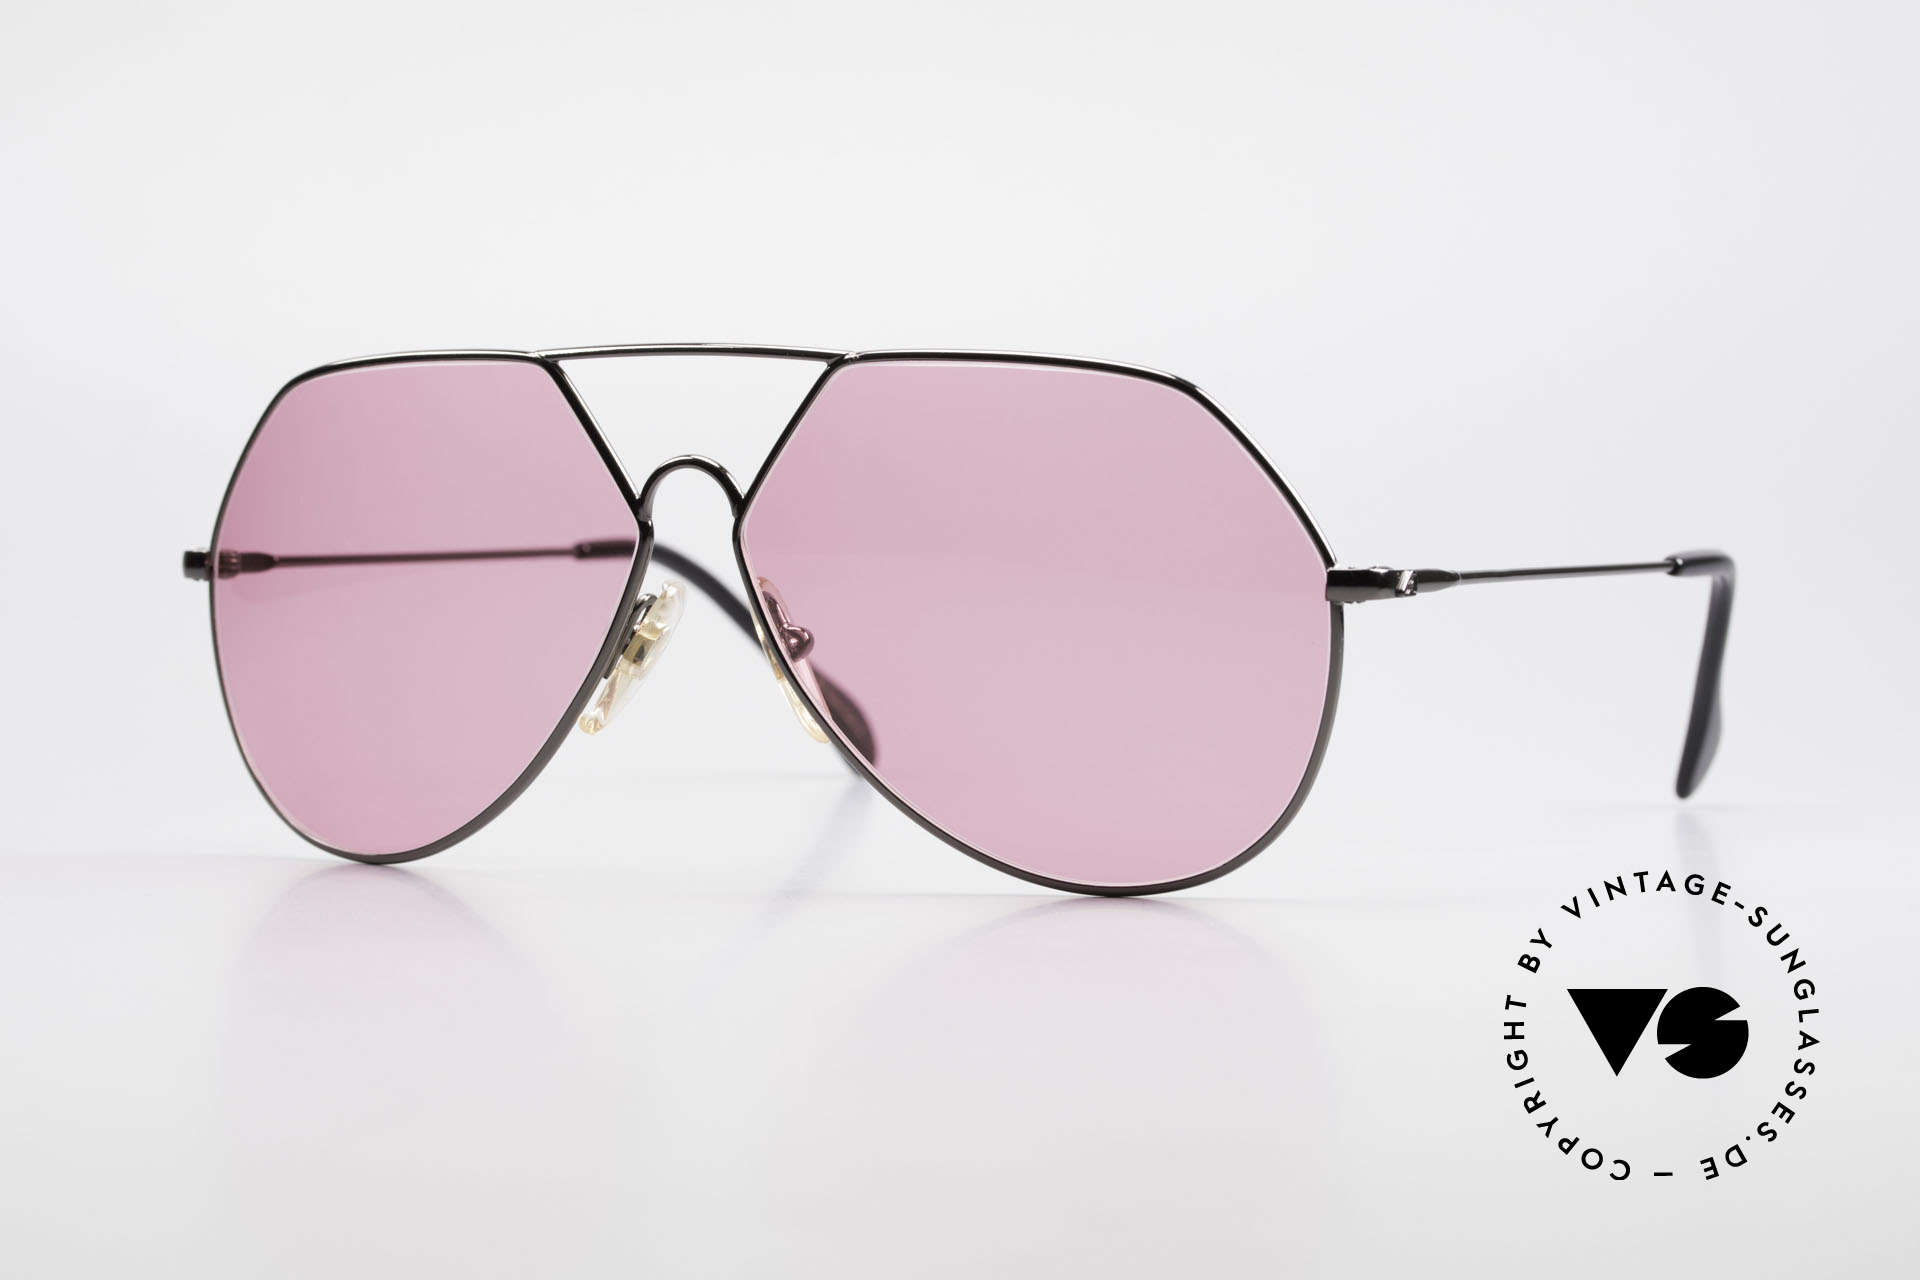 Alpina TR6 Old 80's Aviator Frame Pink, ultra rare old Alpina sunglasses from 1986/1987, Made for Men